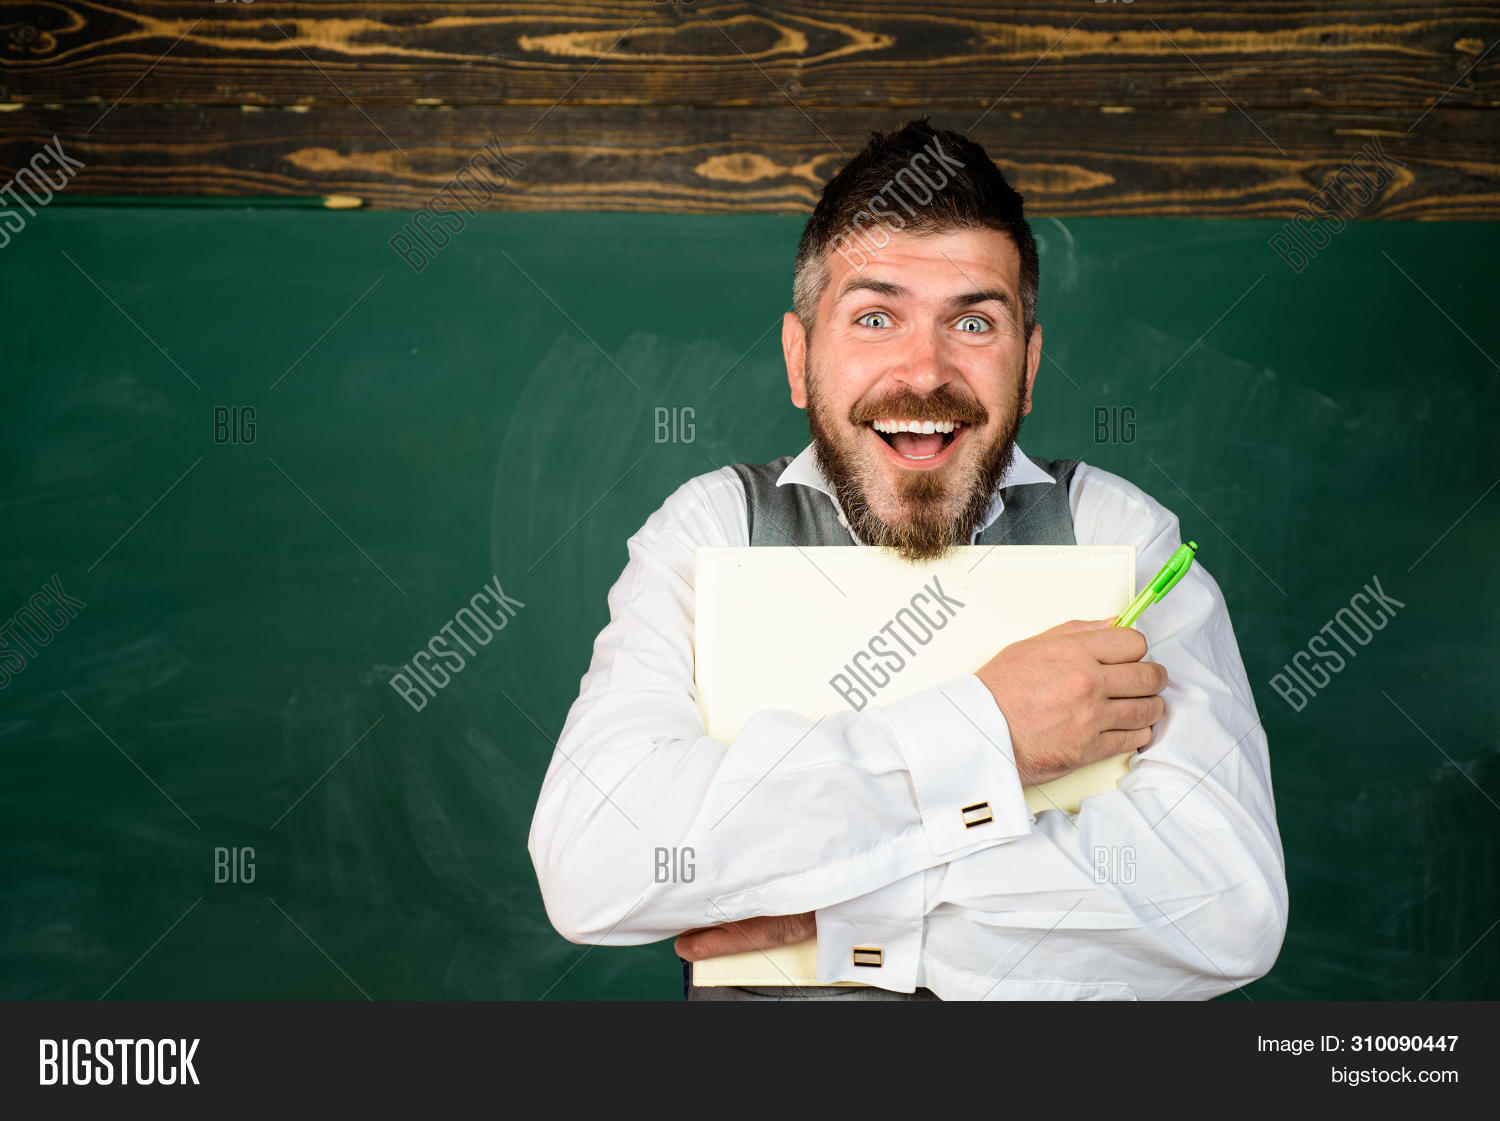 academic,auditorium,background,bearded,biochemistry,biological,biology,biotechnology,blackboard,book,chalkboard,chemist,chemistry,classroom,clever,college,creative,development,docent,educate,educated,education,educational,educator,elementary,idea,knowledge,learn,learning,lecture,man,microbiology,notebook,professor,school,schooling,science,session,smiling,student,studying,success,teach,teacher,teaching,test,theme,theories,university